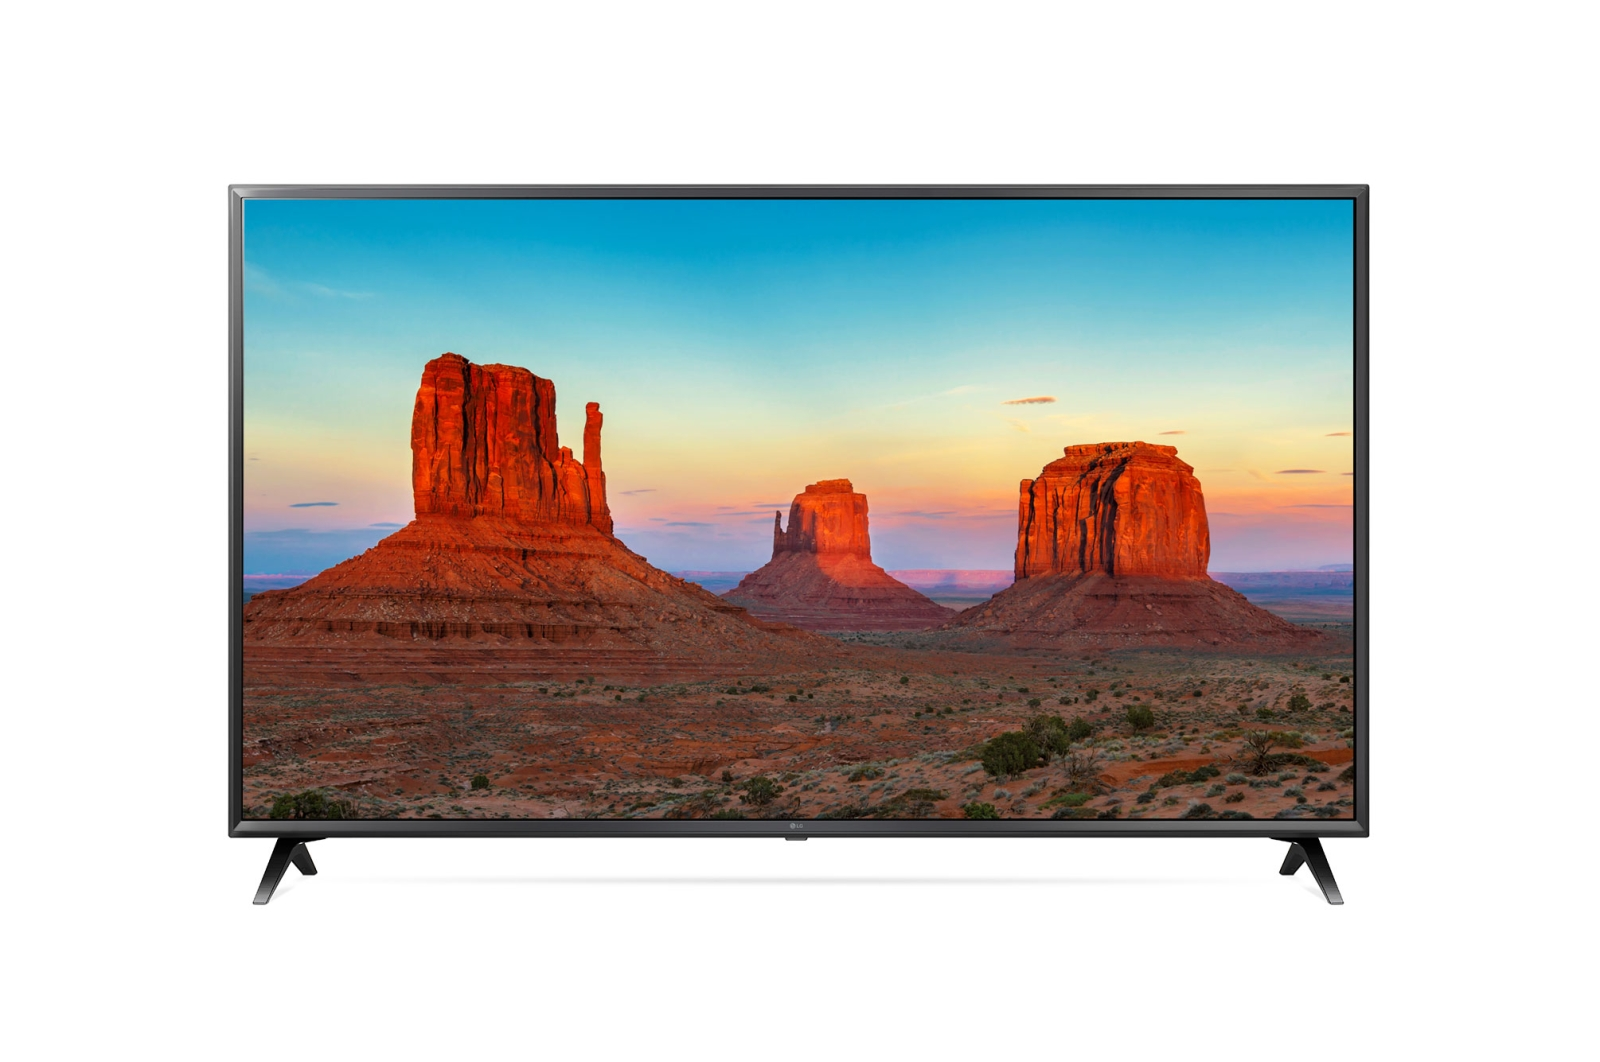 цена на Телевизор LG 65UK6300 LED 65 Black, Smart TV, 16:9, 3840x2160, USB, HDMI, Wi-Fi, RJ-45, DVB-T2, C, S2